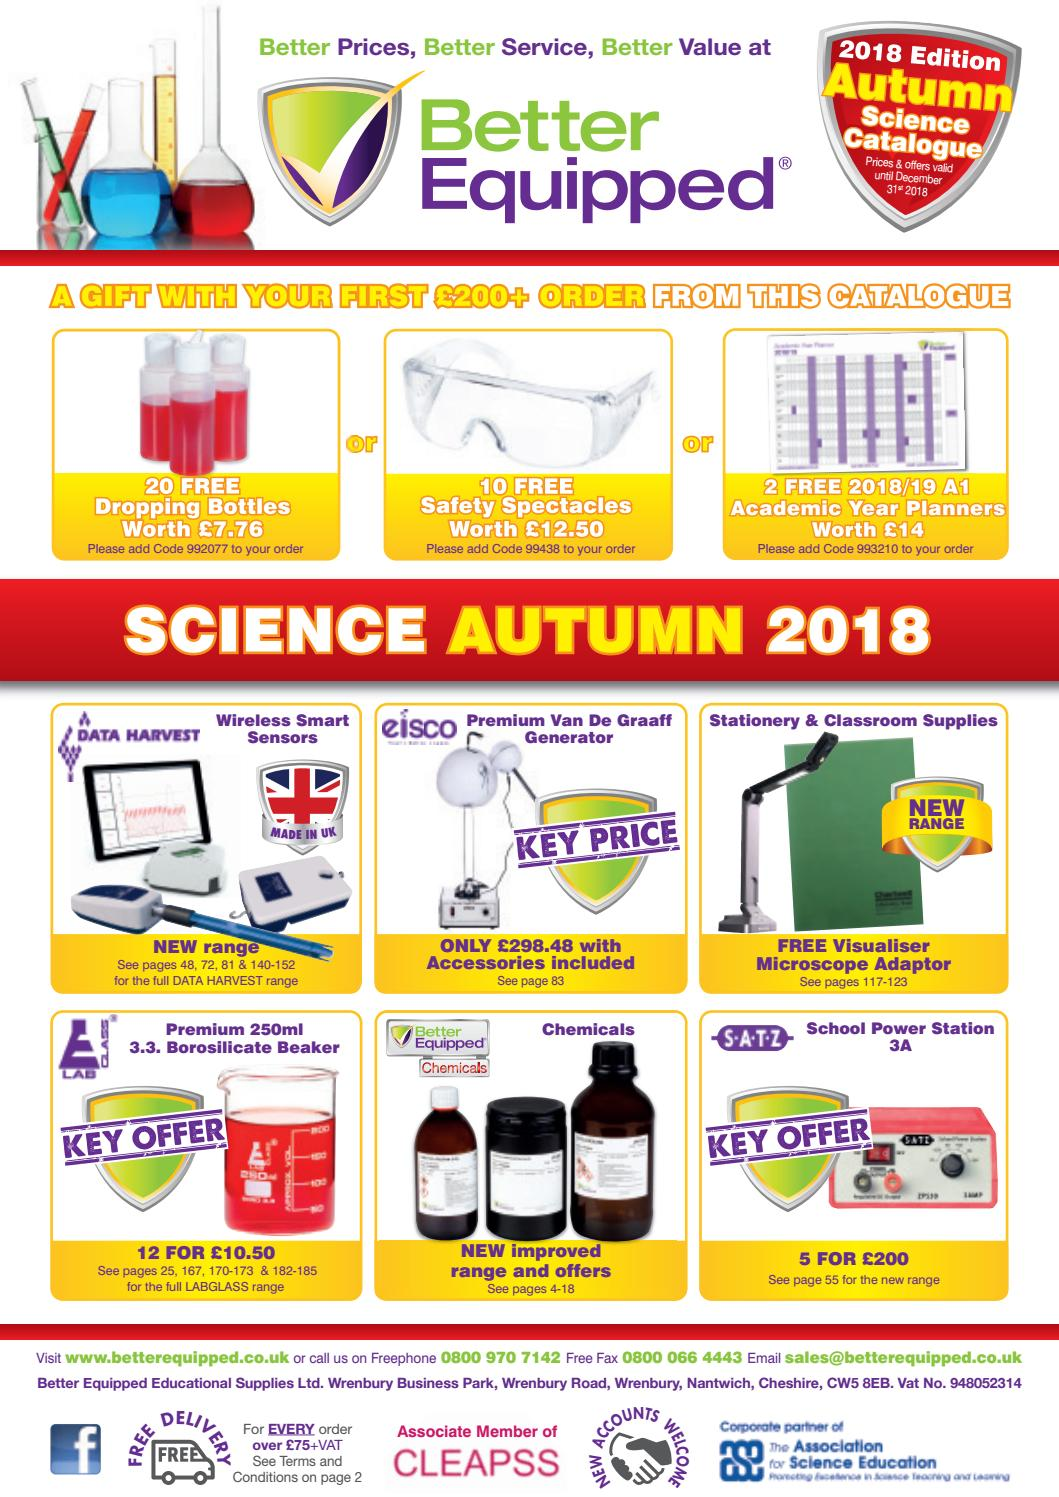 Better equipped educational supplies ltd autumn 2018 science better equipped educational supplies ltd autumn 2018 science catalogue by better equipped issuu fandeluxe